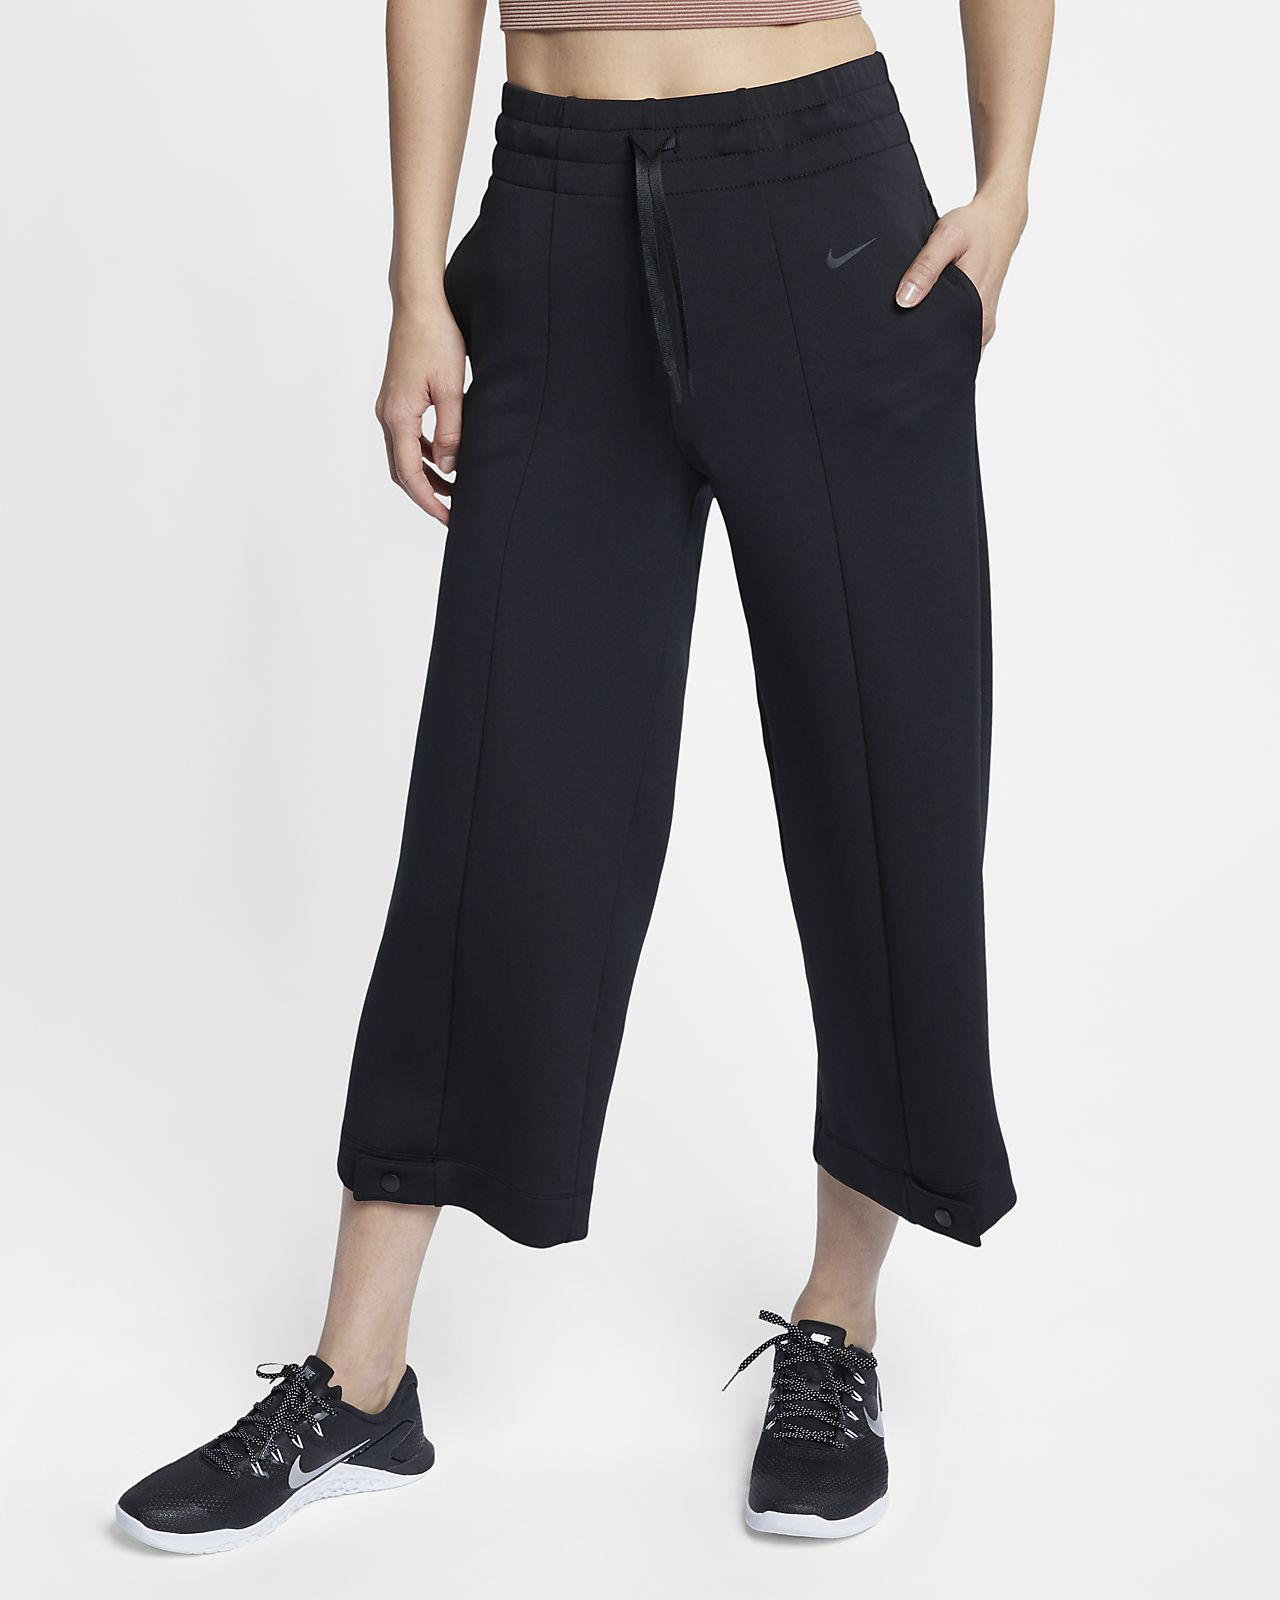 Nike Dri-FIT Women's Training Trousers